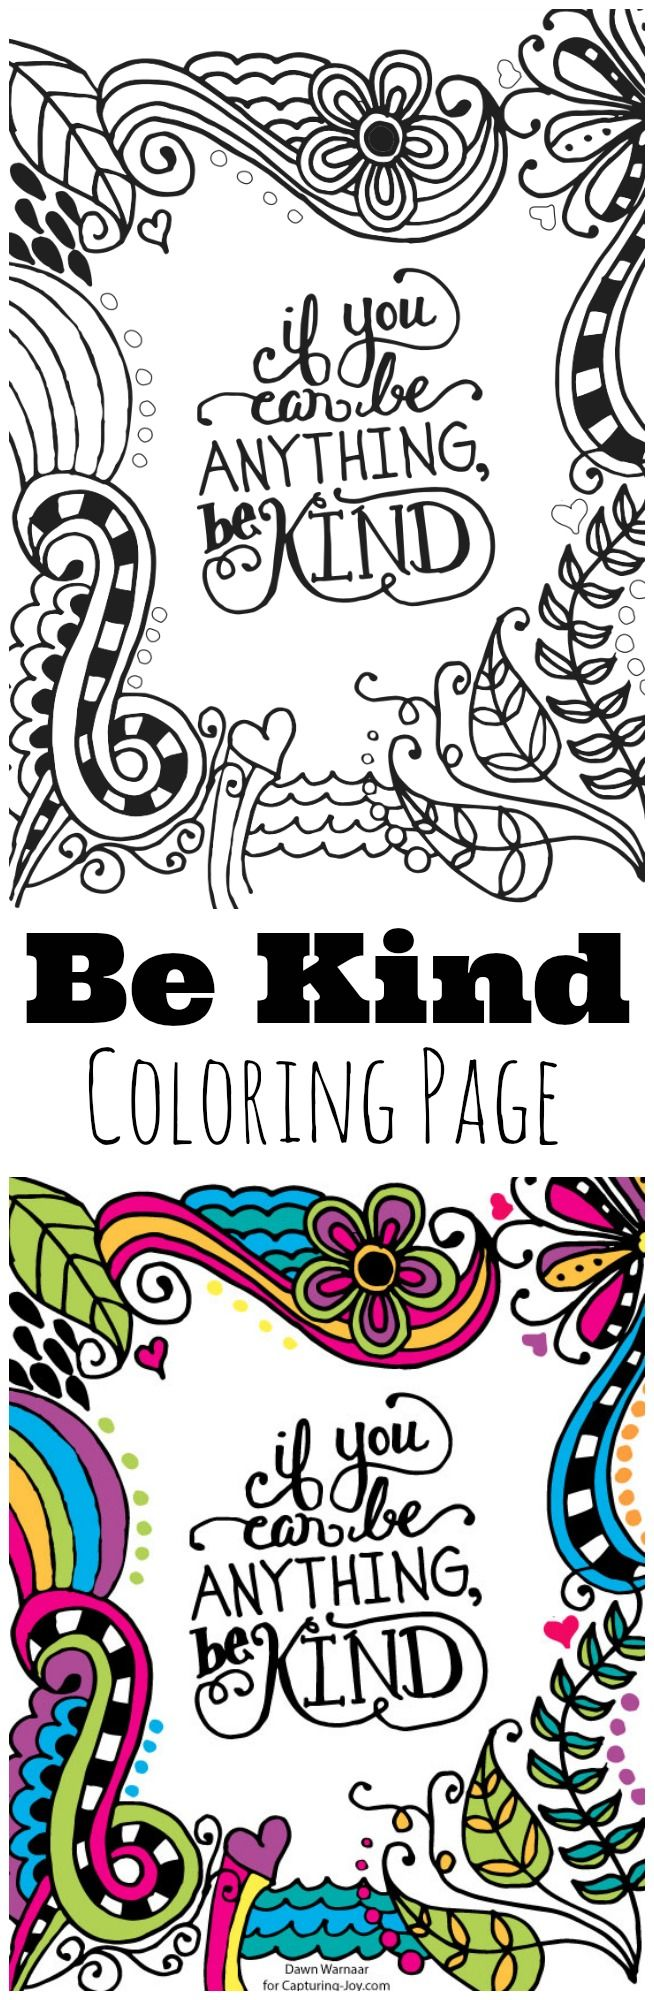 P 40 coloring pages - Be Kind Kids Coloring Page Great For Kids To Help Encourage Kindness Hang On